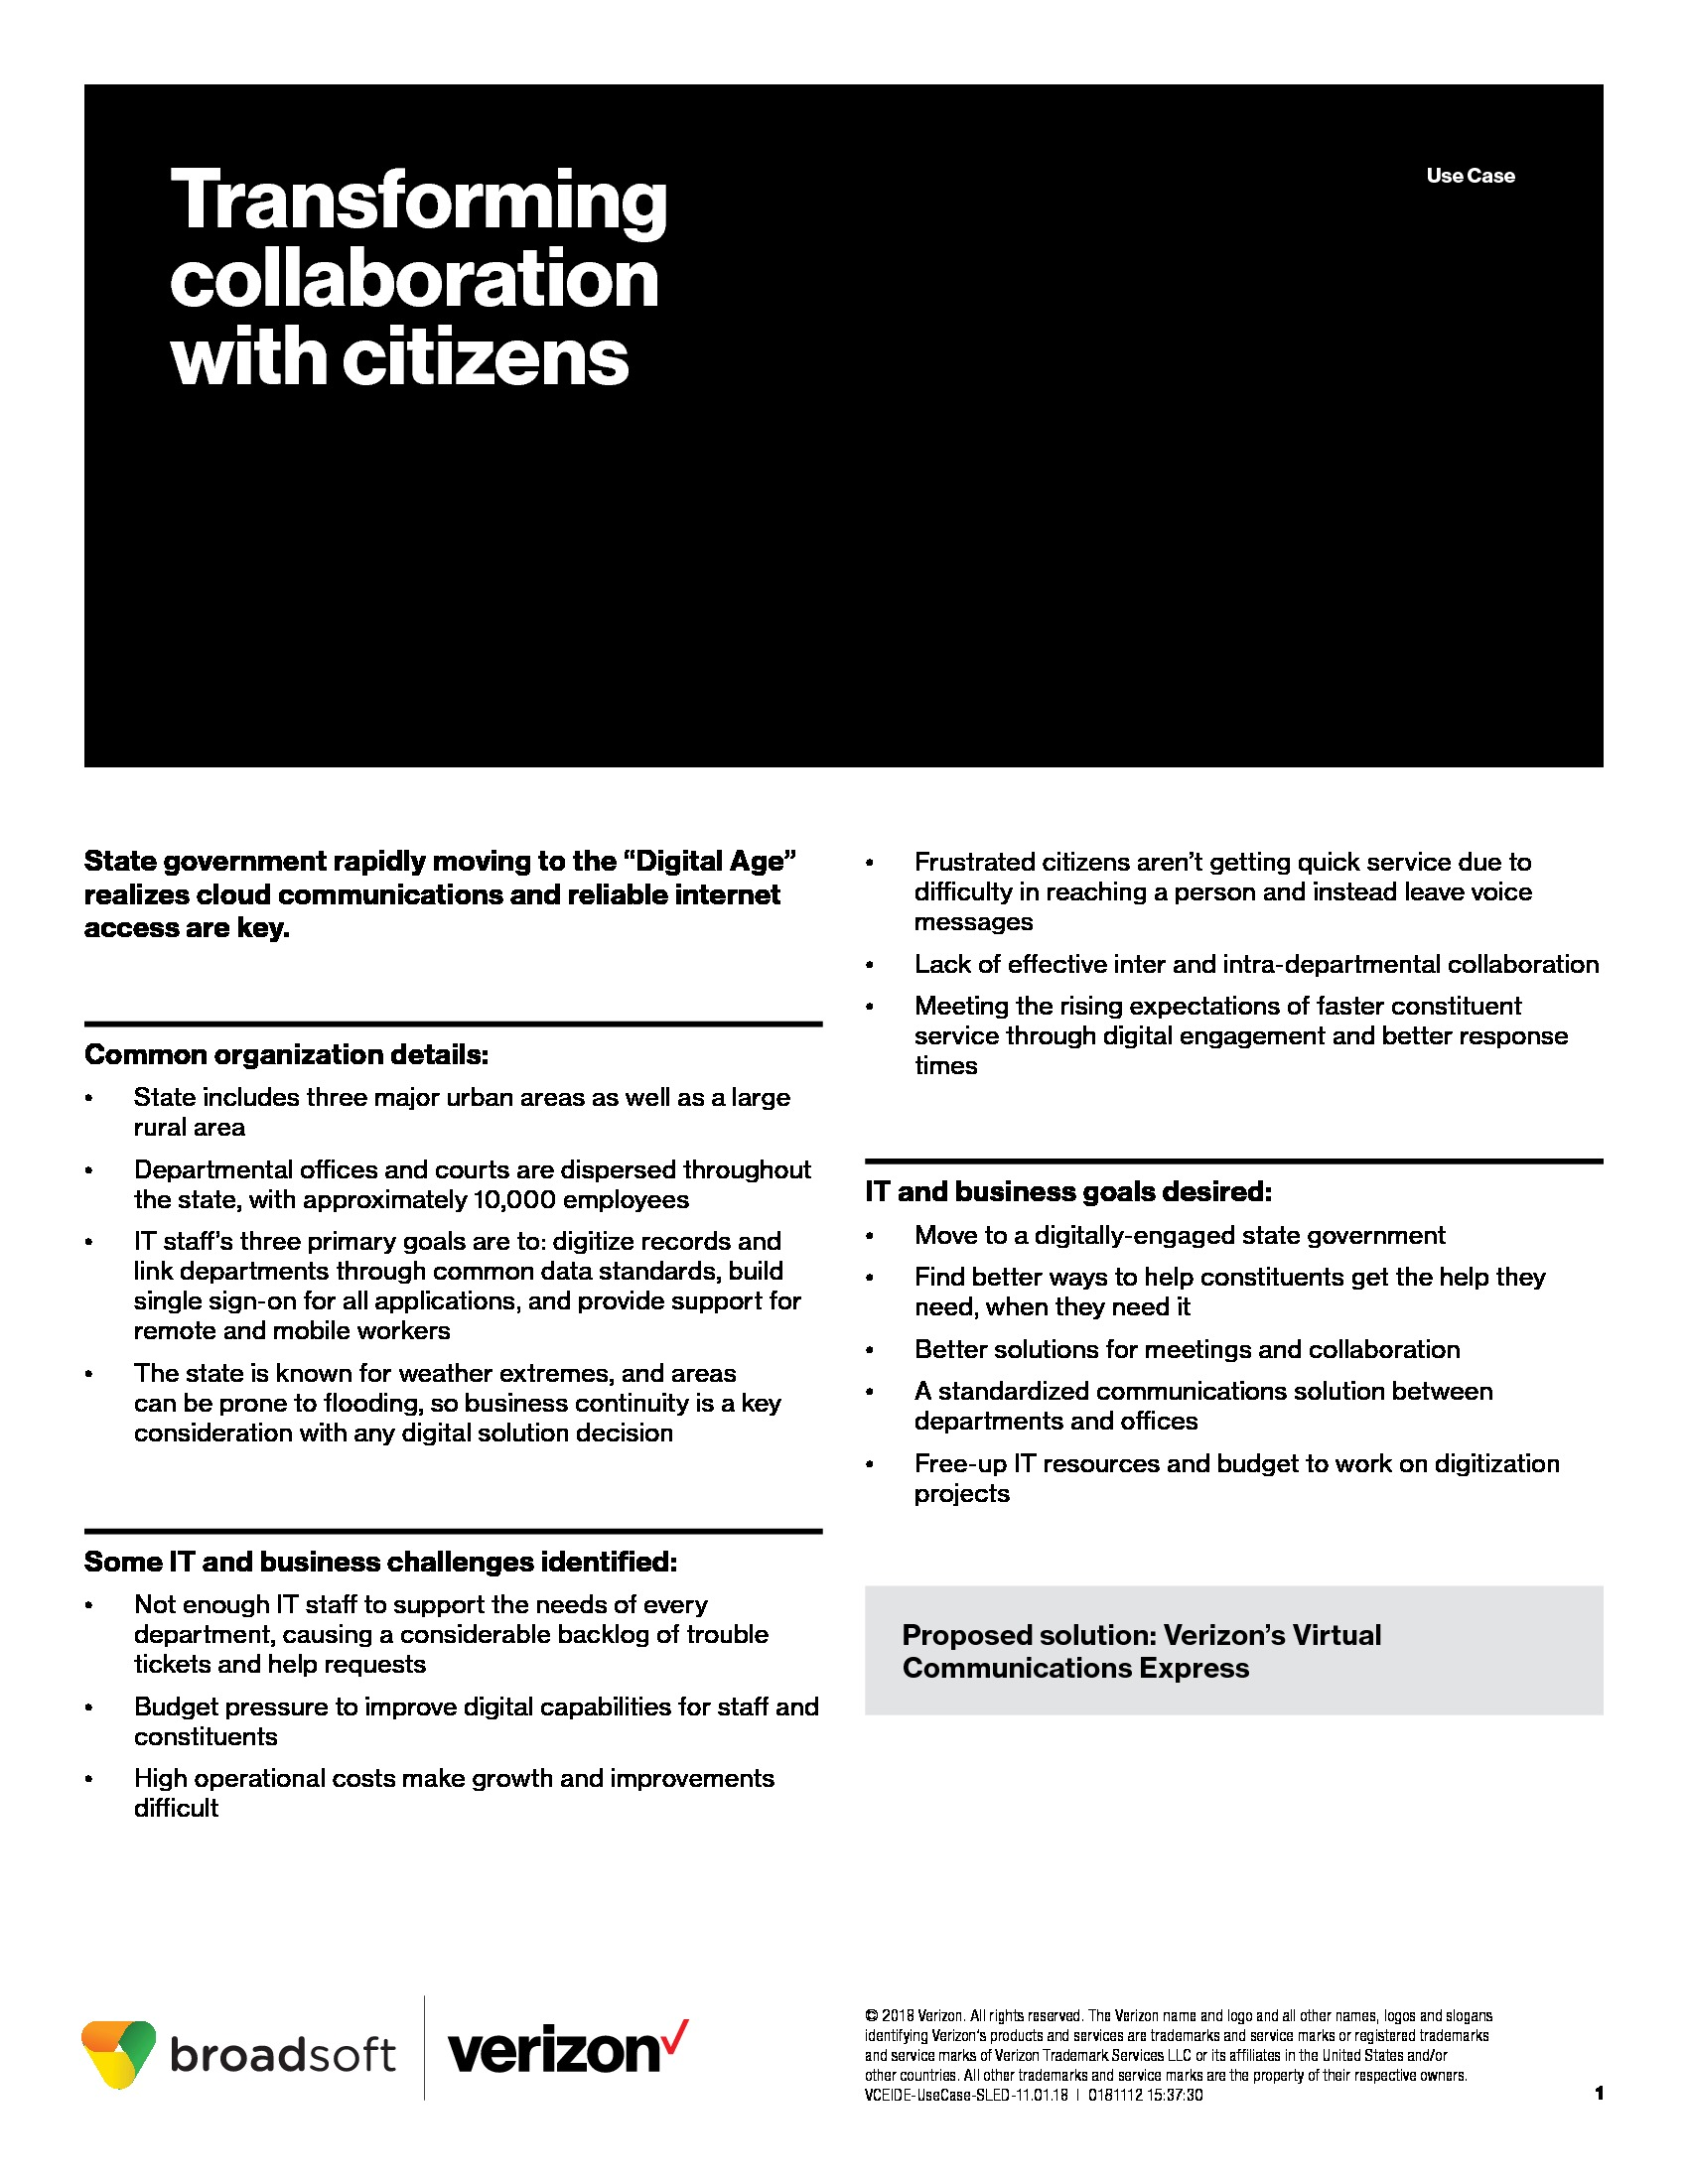 GT - Verizon - Client Supplied - 191001 - Transforming Collaborations with Citizens